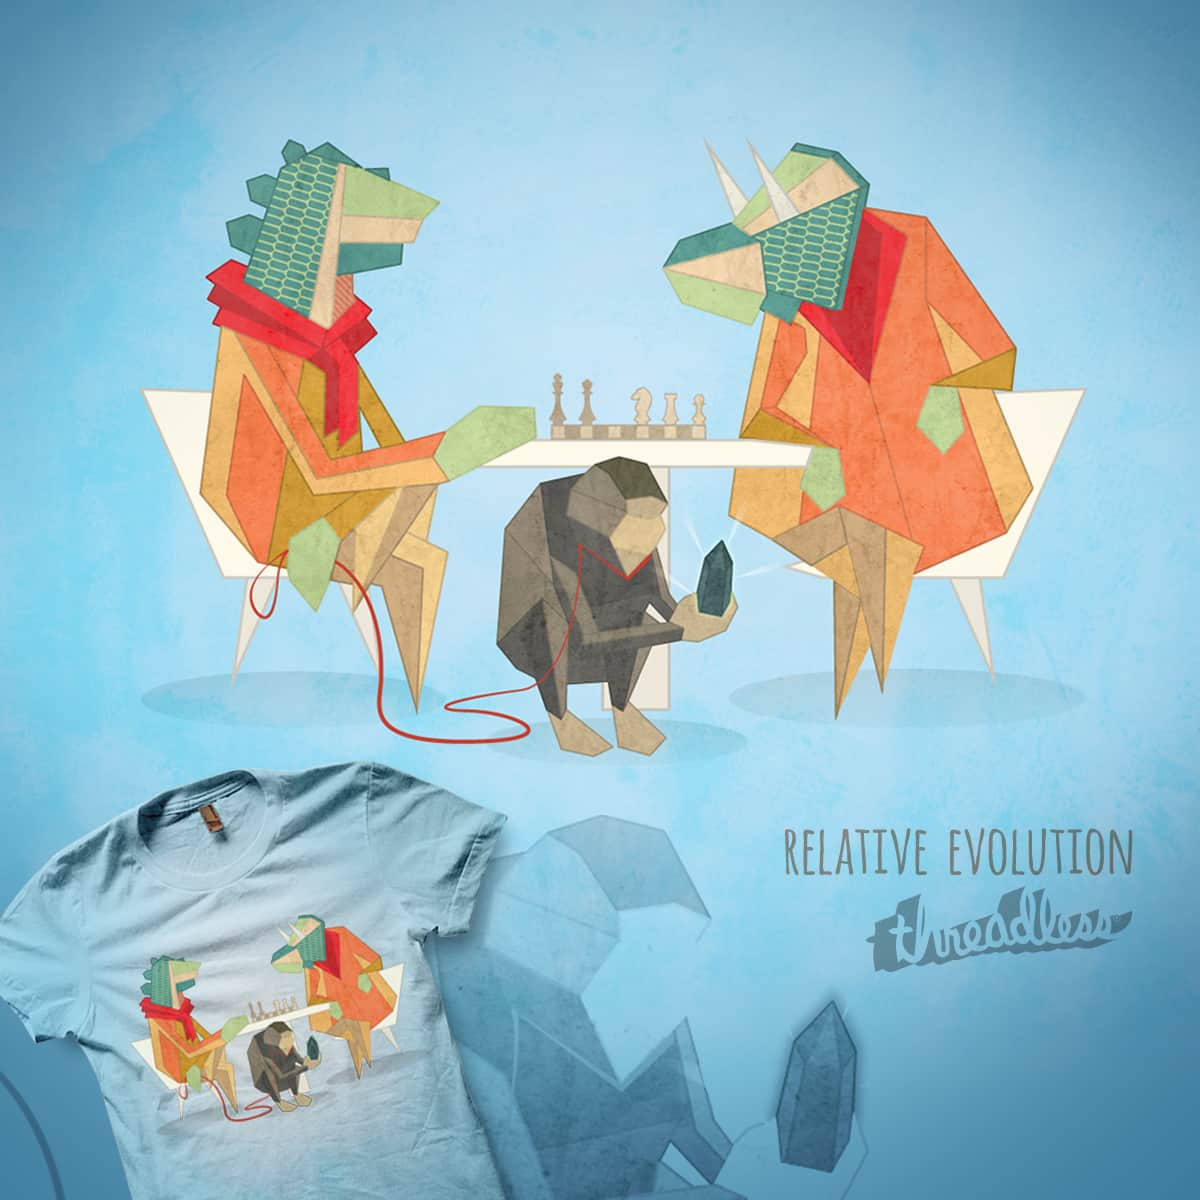 Relative Evolution by Tony.Spinotti on Threadless